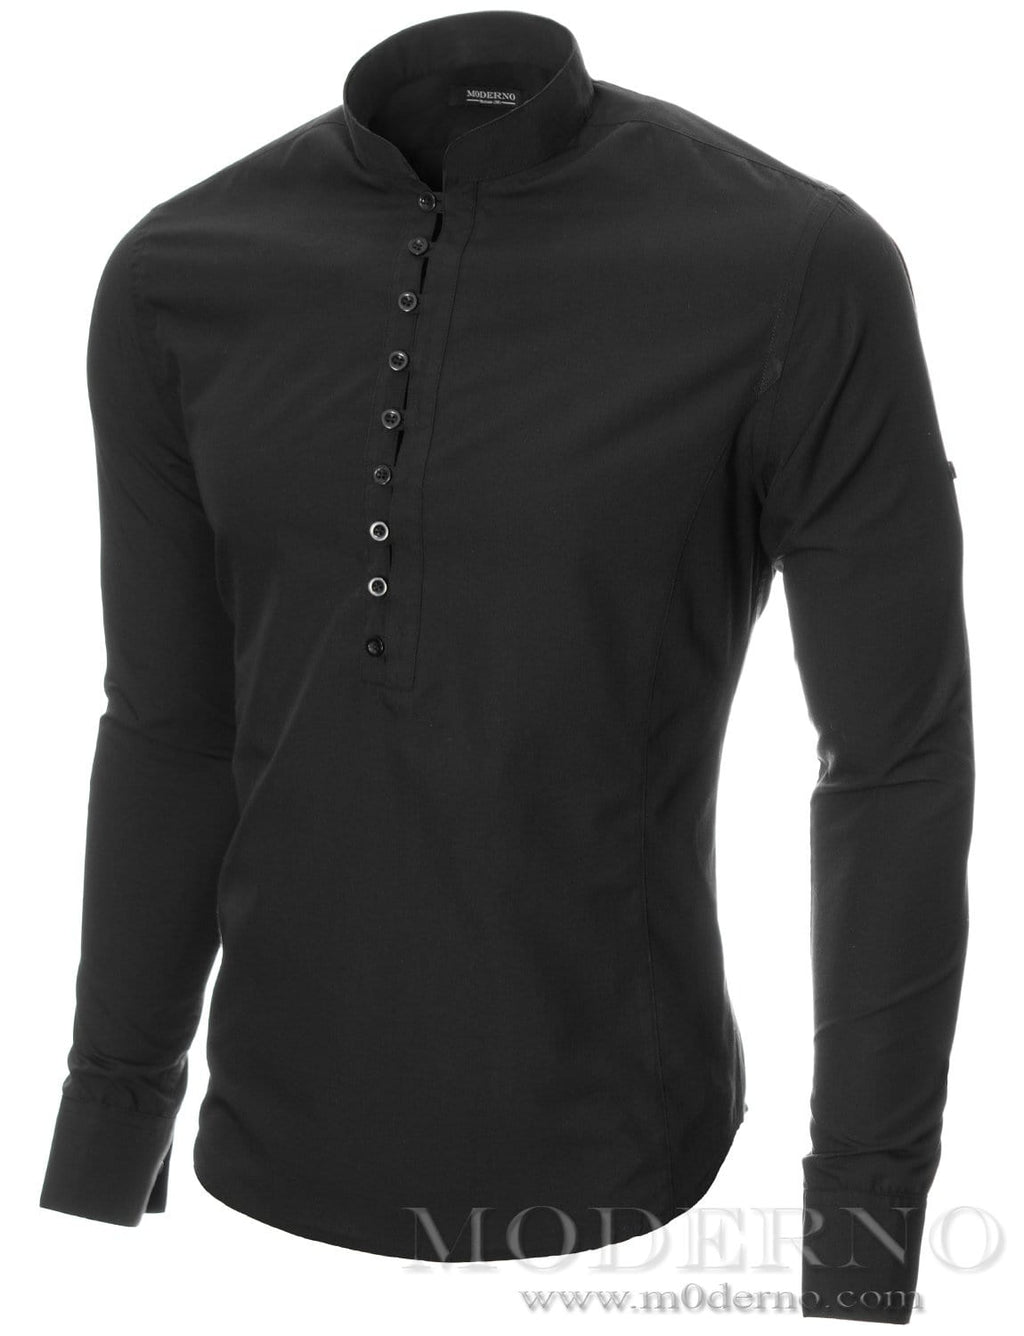 Mens button-down shirt black (MOD1431LS) - MODERNO